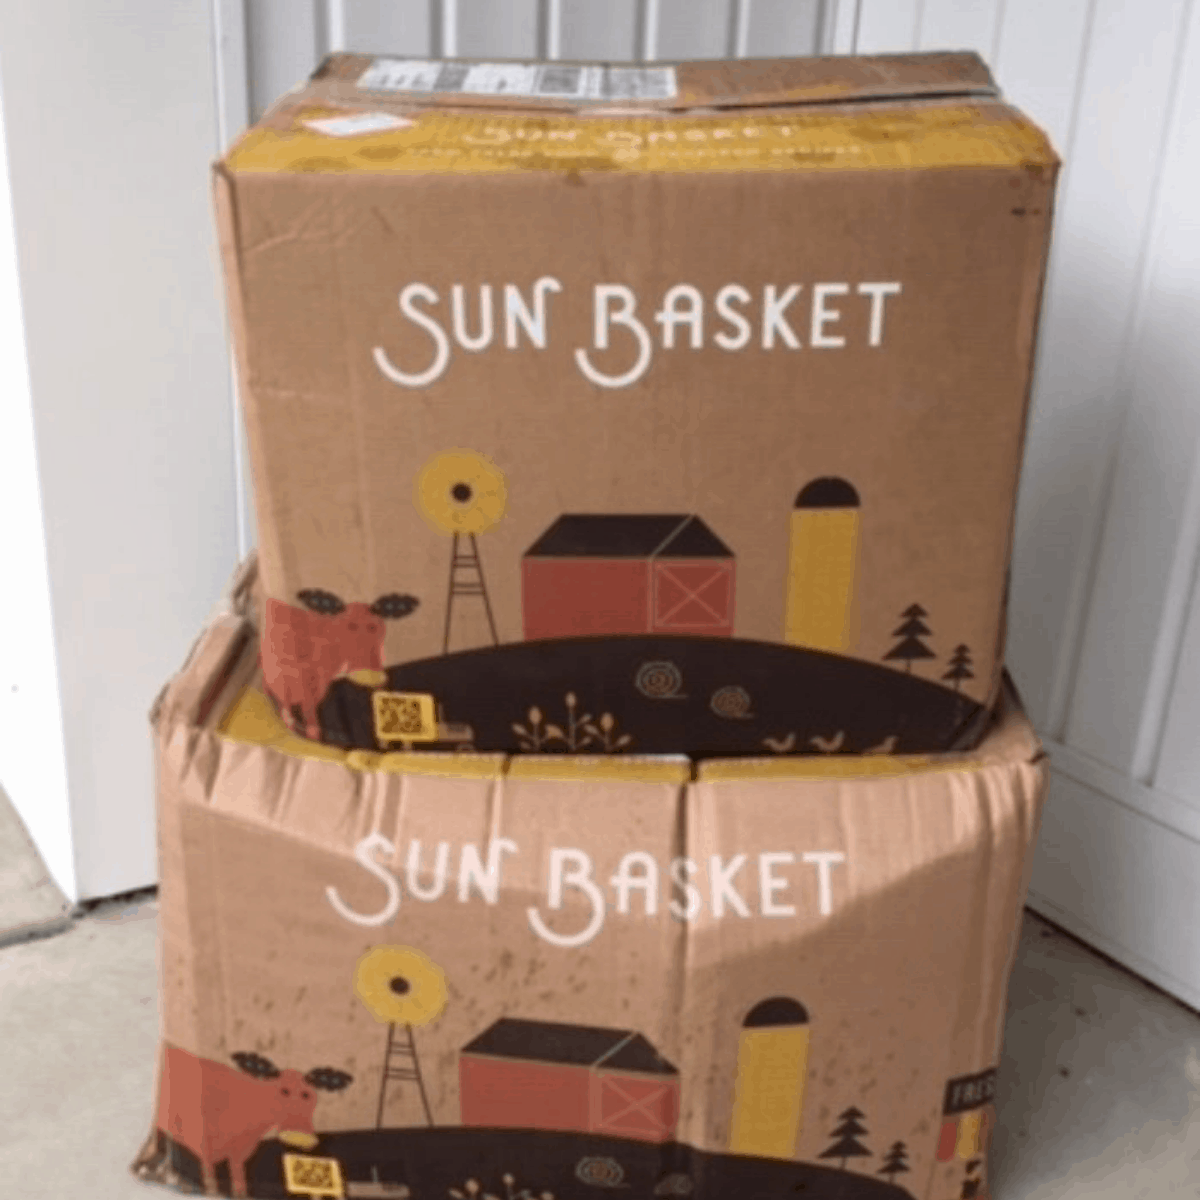 2 boxes from Sun Basket on the front porch